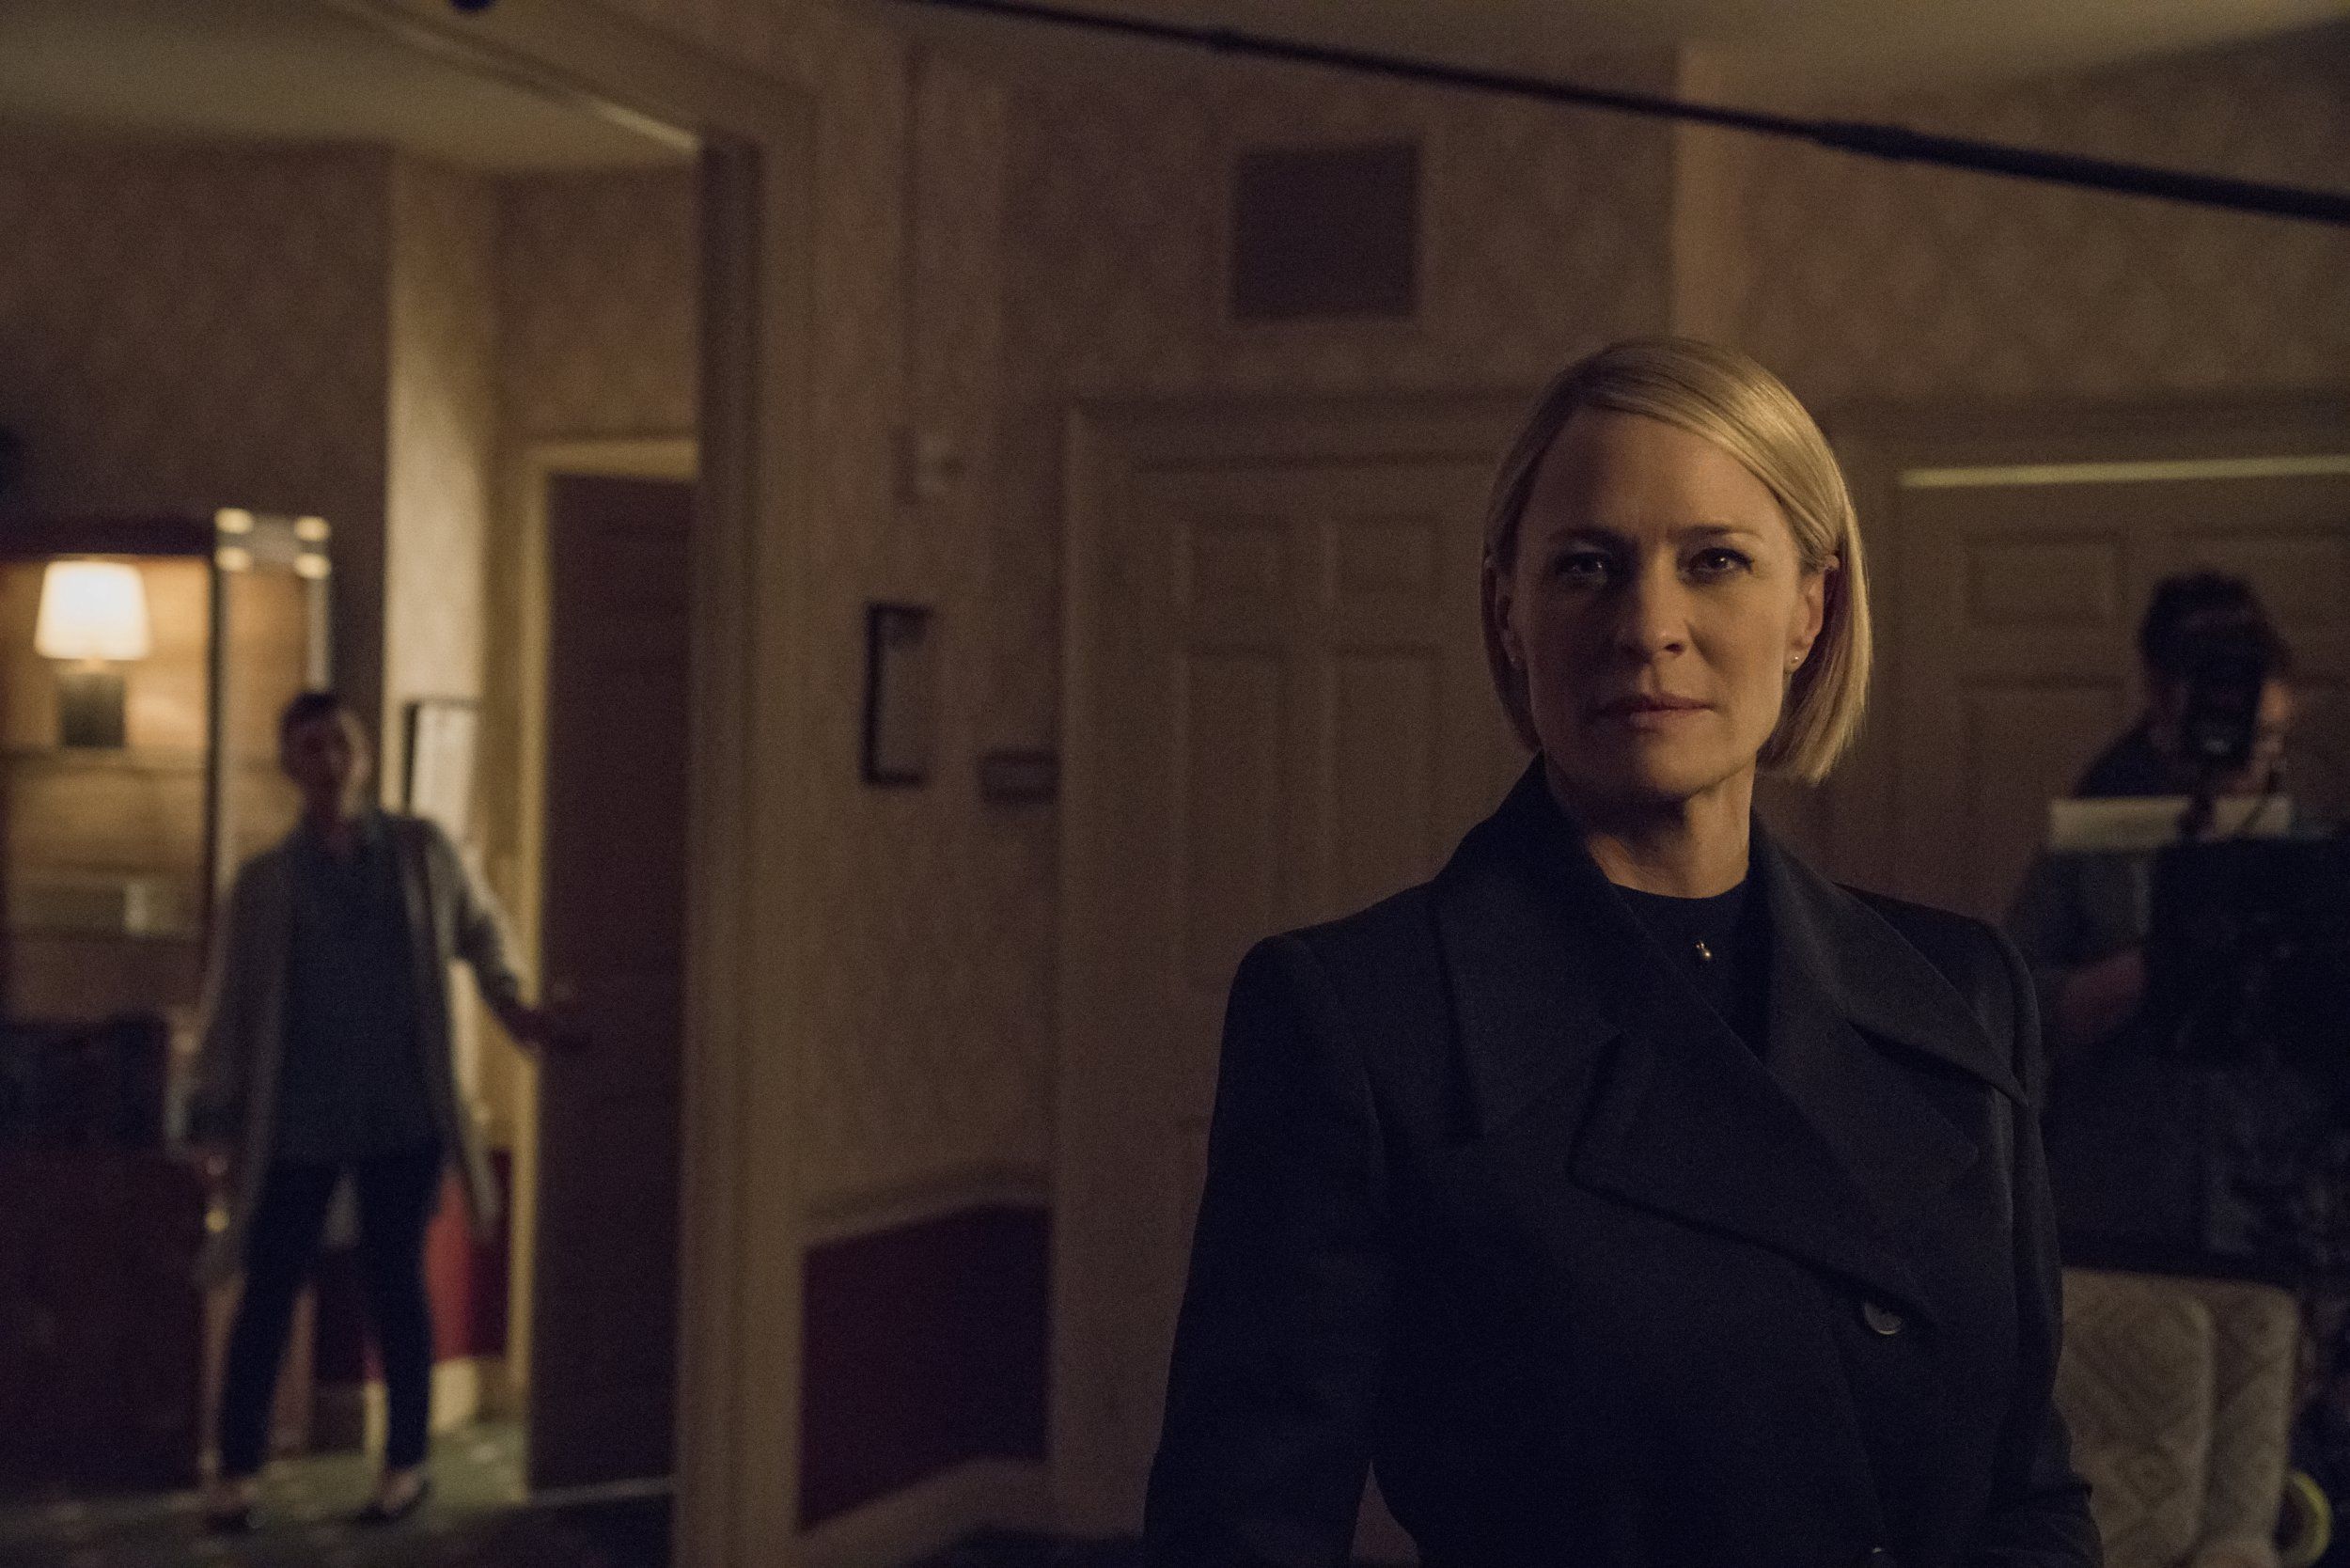 House of Cards season 6 revealed by Netflix, here's who is joining the cast